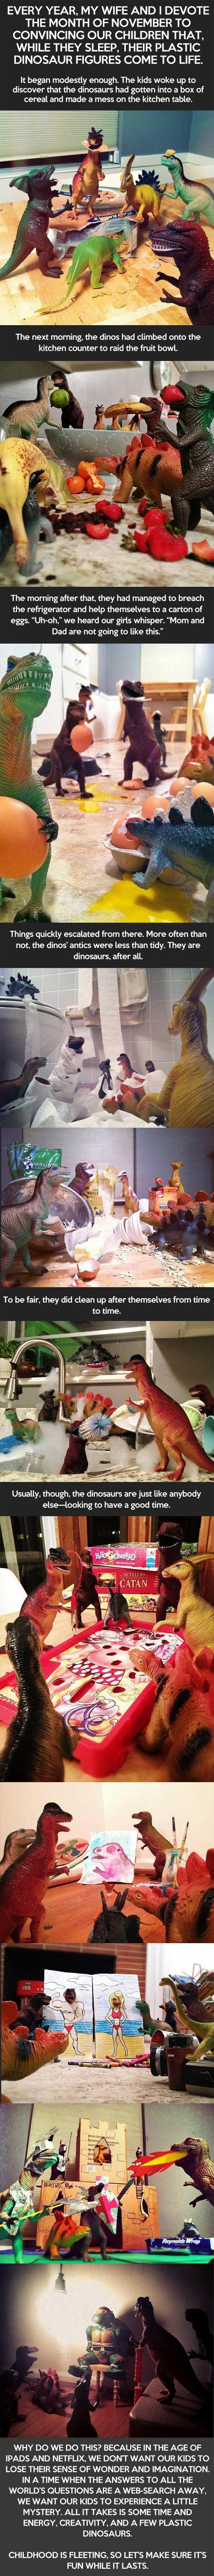 If You Were A Child, How Would Real Dinosaurs Be For A Surprise?